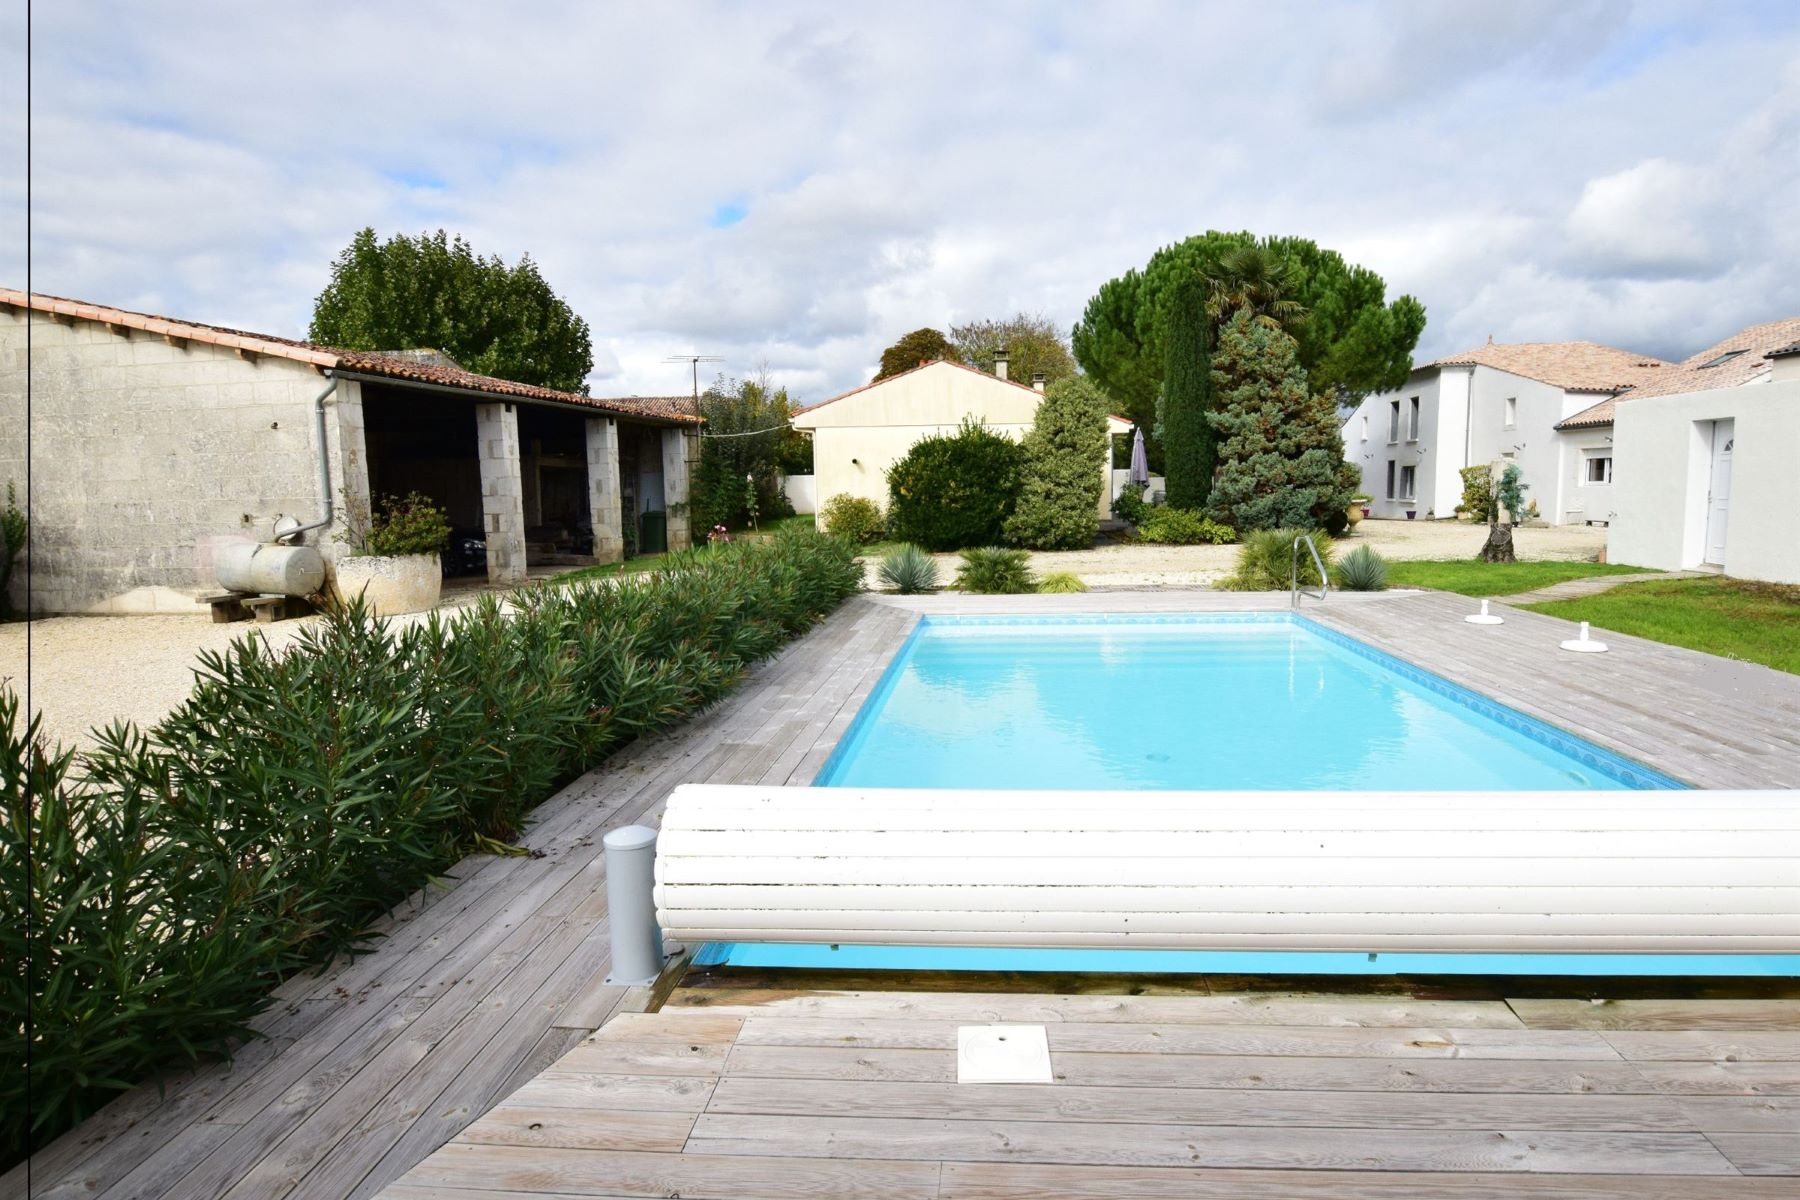 Single Family Home for Sale at Estuary of Gironde, housing estate Other Poitou-Charentes, Poitou-Charentes, 17240 France